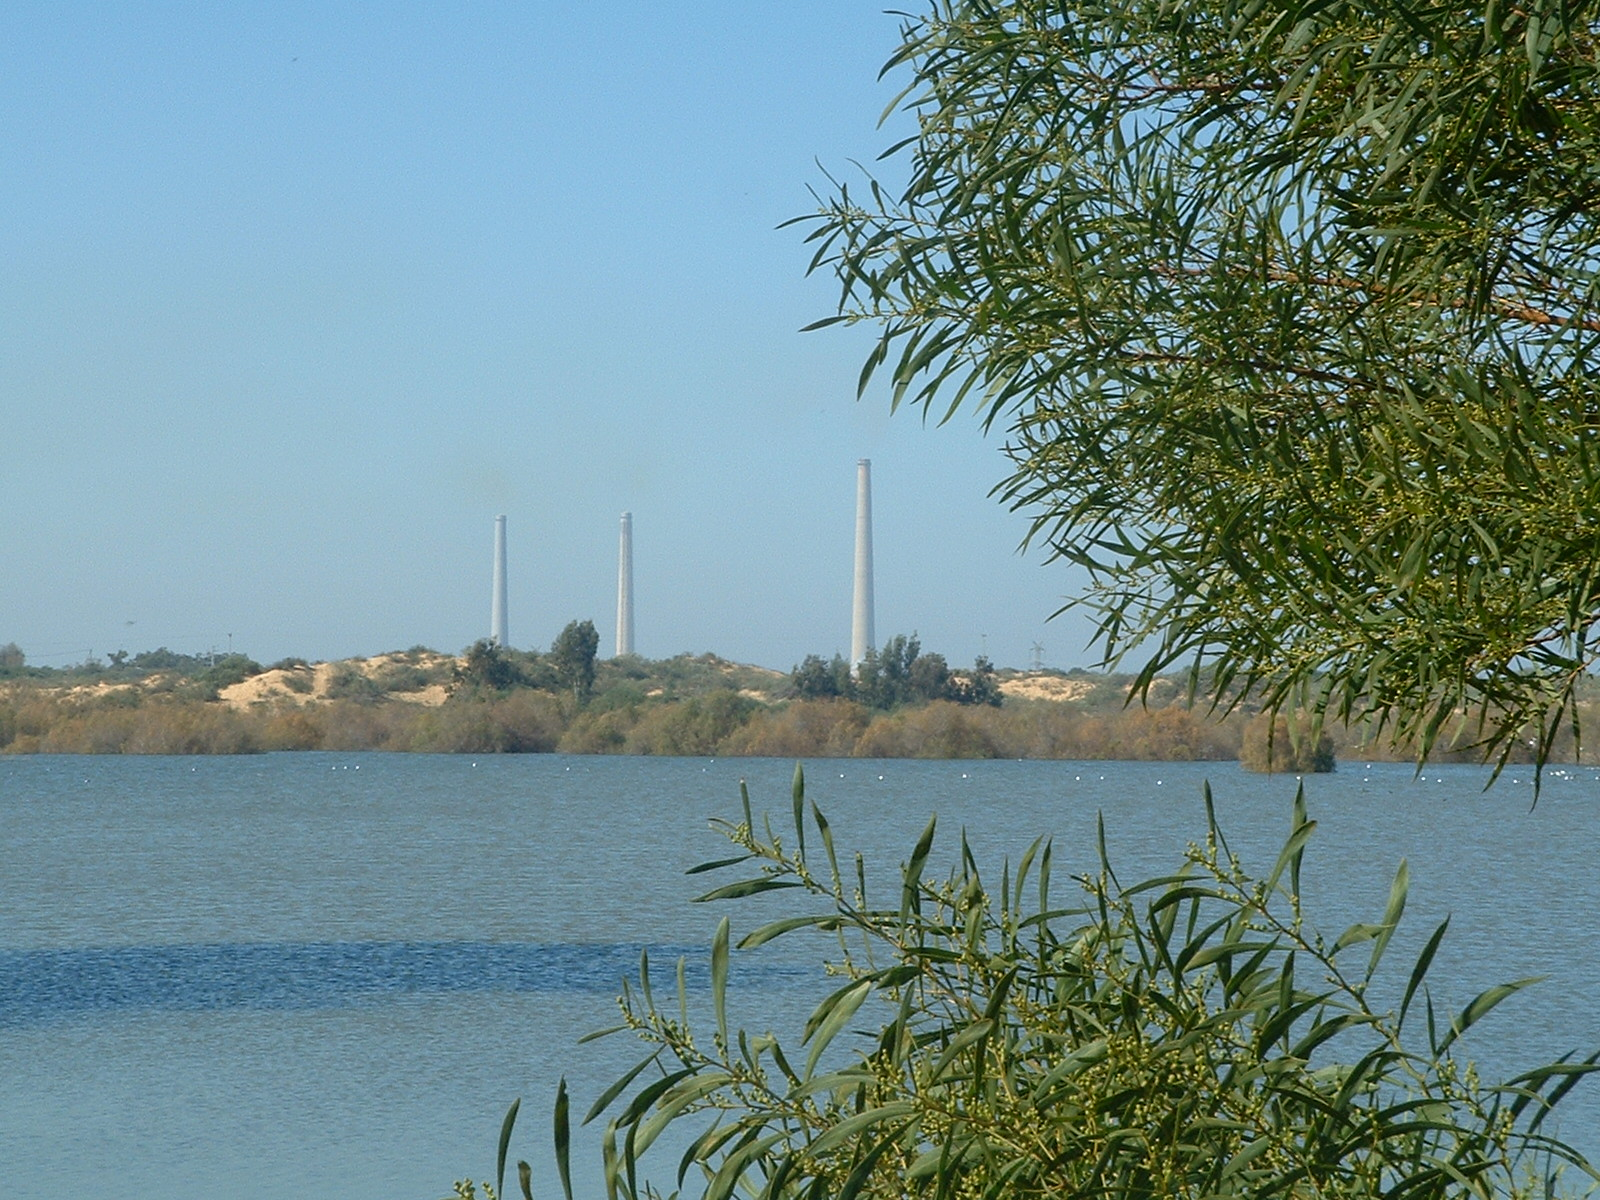 "Nahalei Menashe water project reservoir in Caesarea, Israel, Hadera ""Orot Rabin"" power station in the background. Water conservation, Israel, water management, water crisis, water resources, Middle East, desalinization. Image via RickP, Wikimedia Commons"